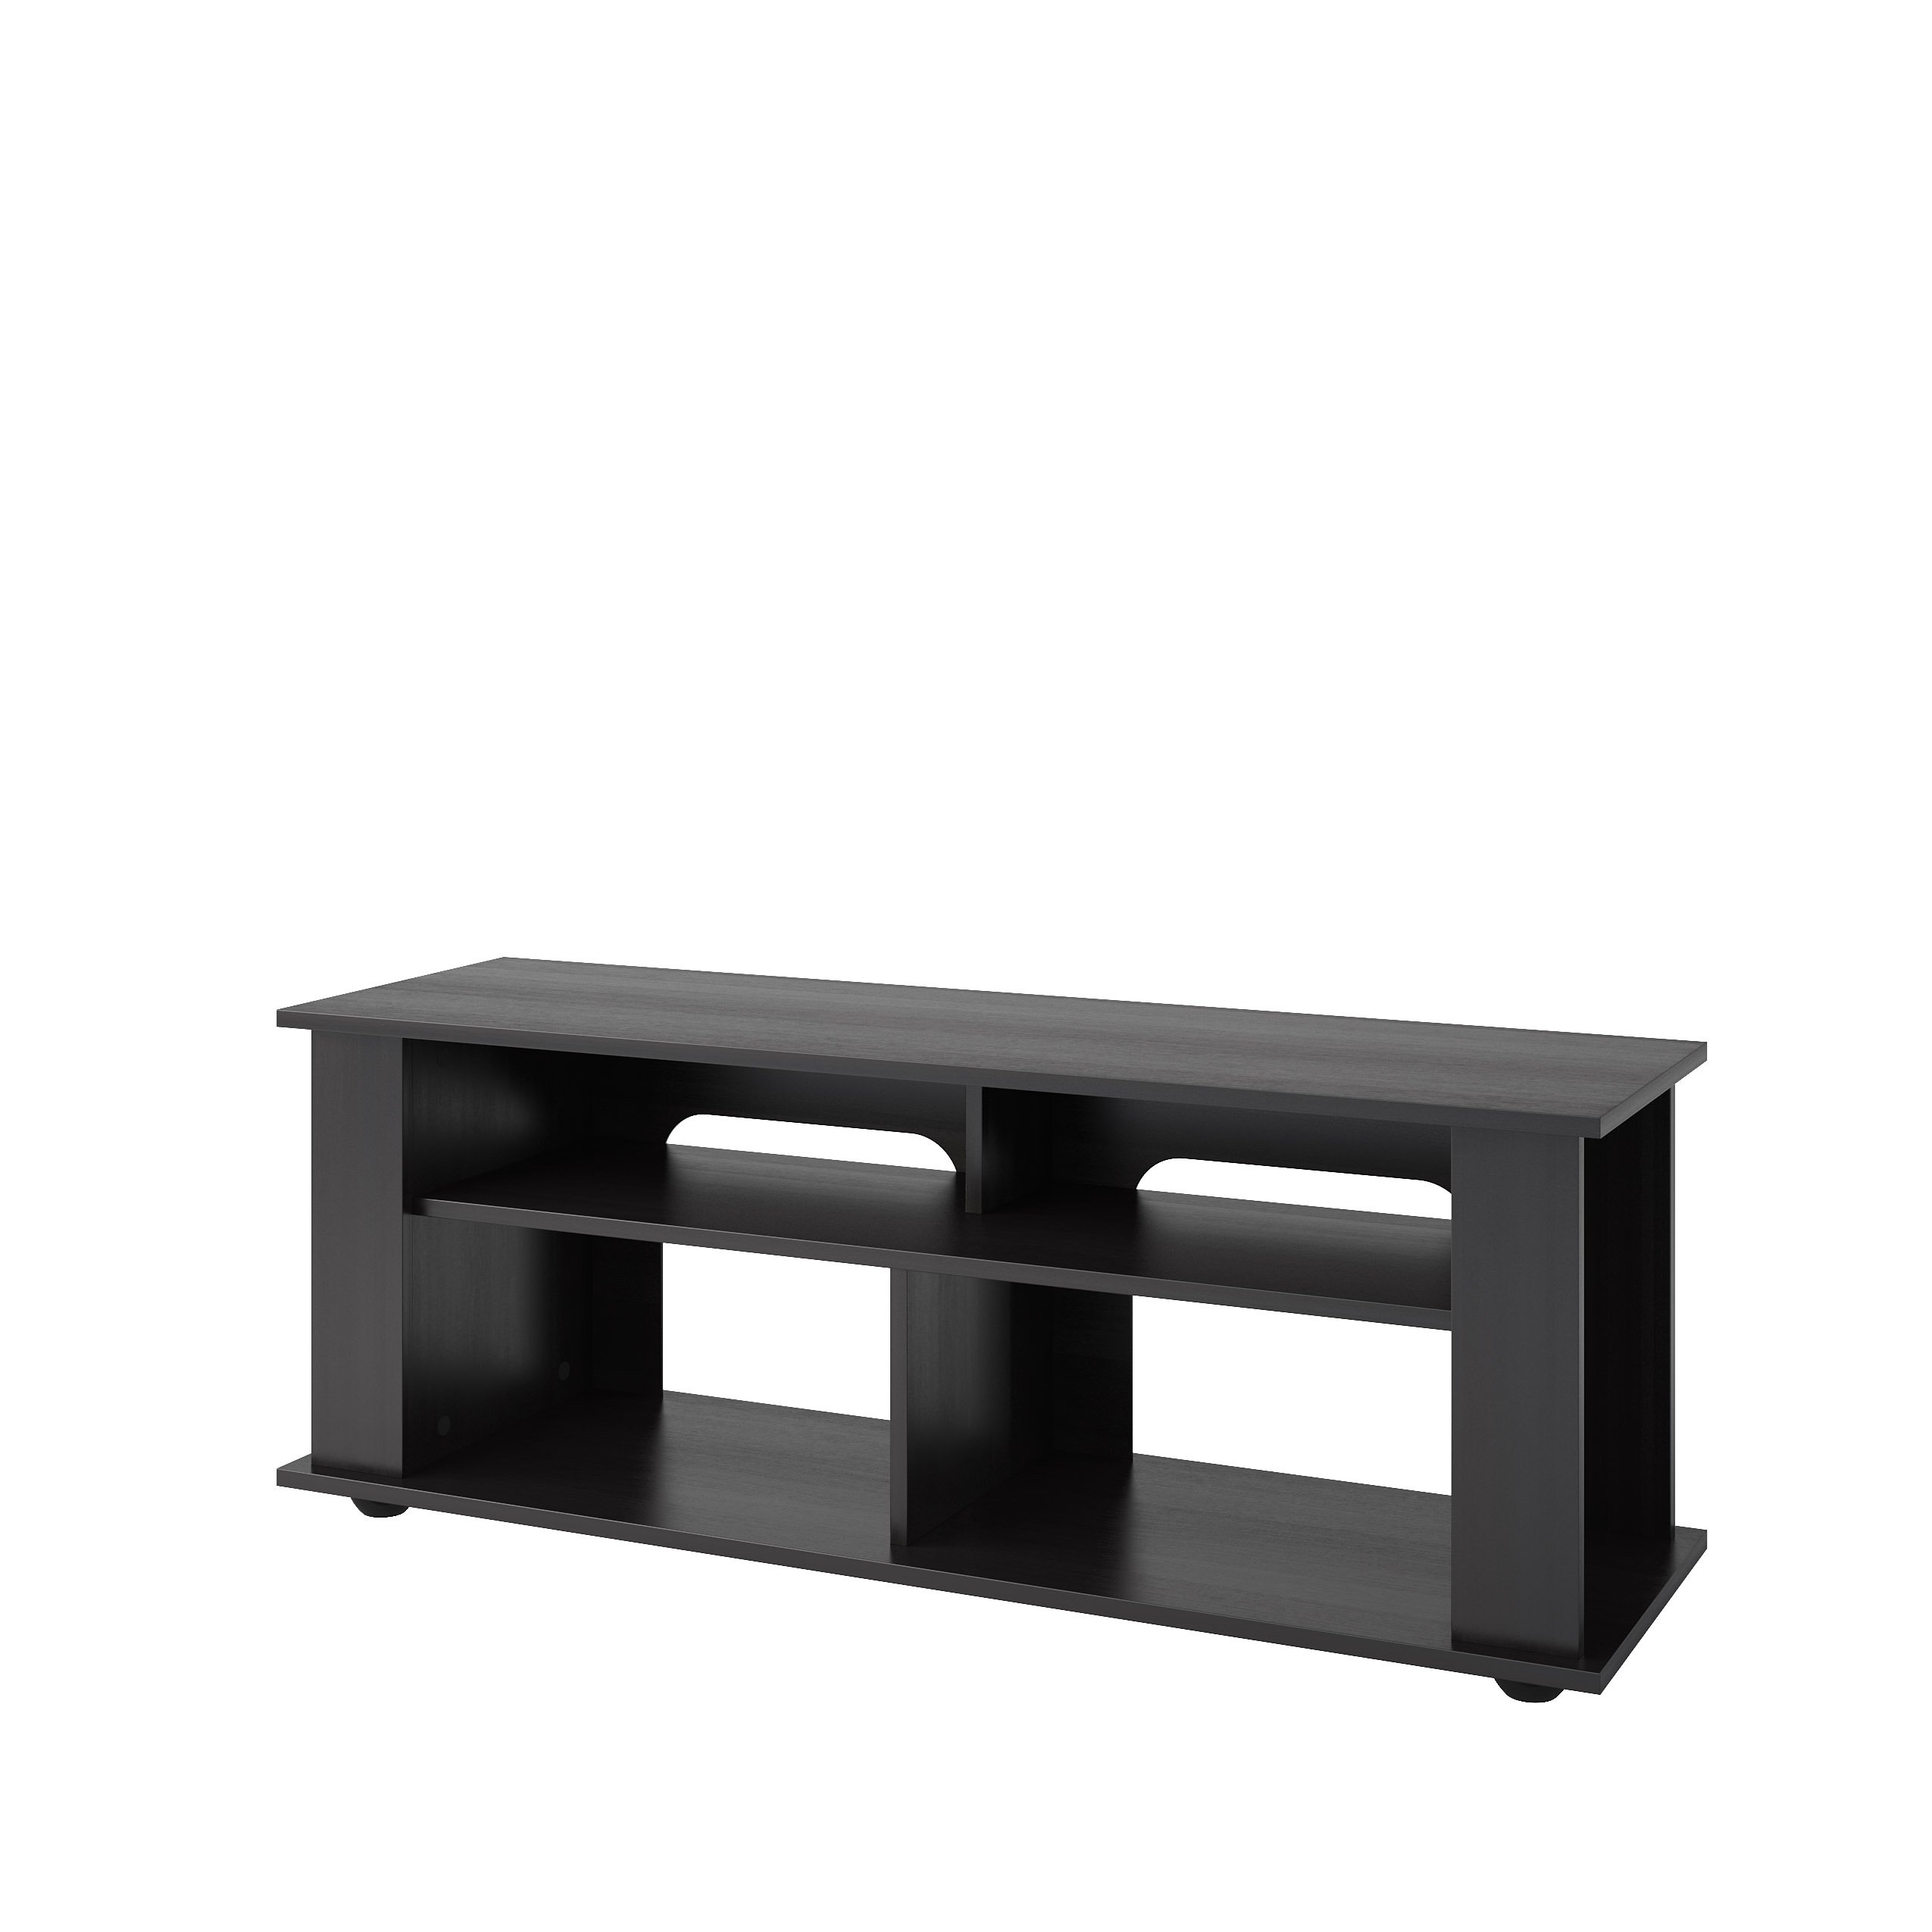 CorLiving TBF-604-B Bakersfield Ravenwood TV/Component Stand, Black by CorLiving (Image #4)